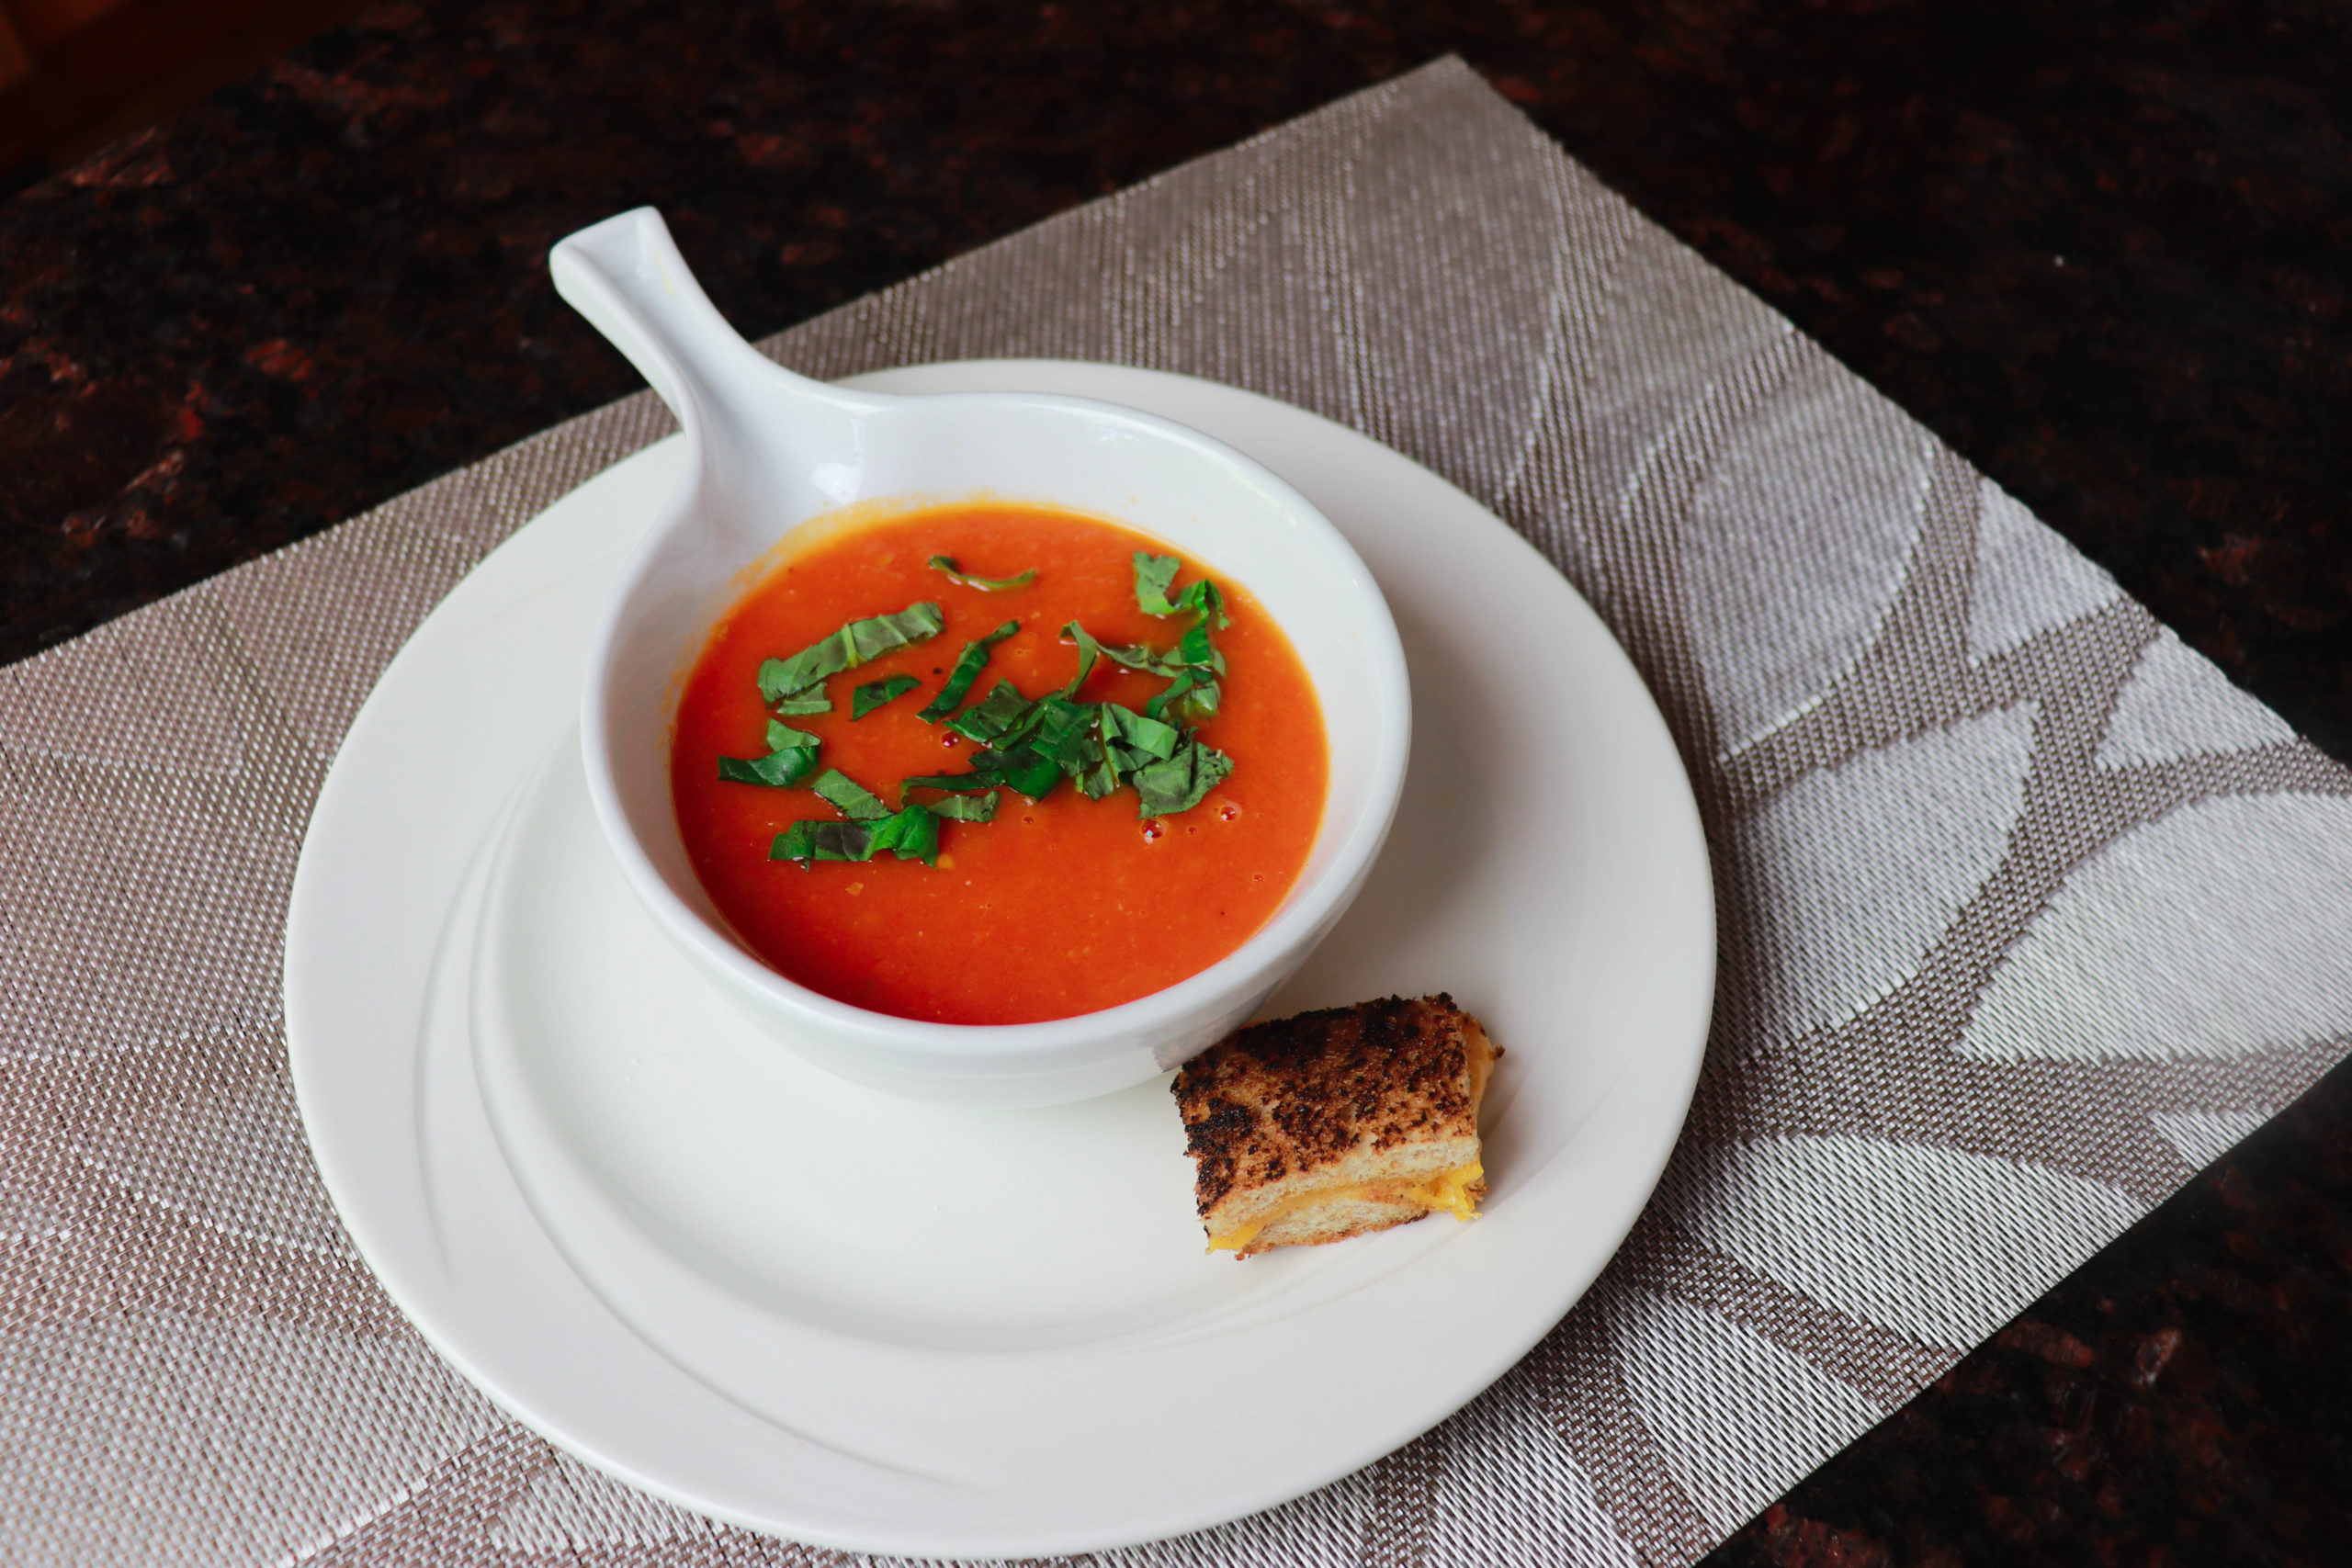 Fresh plum tomato soup with grilled cheese croutons